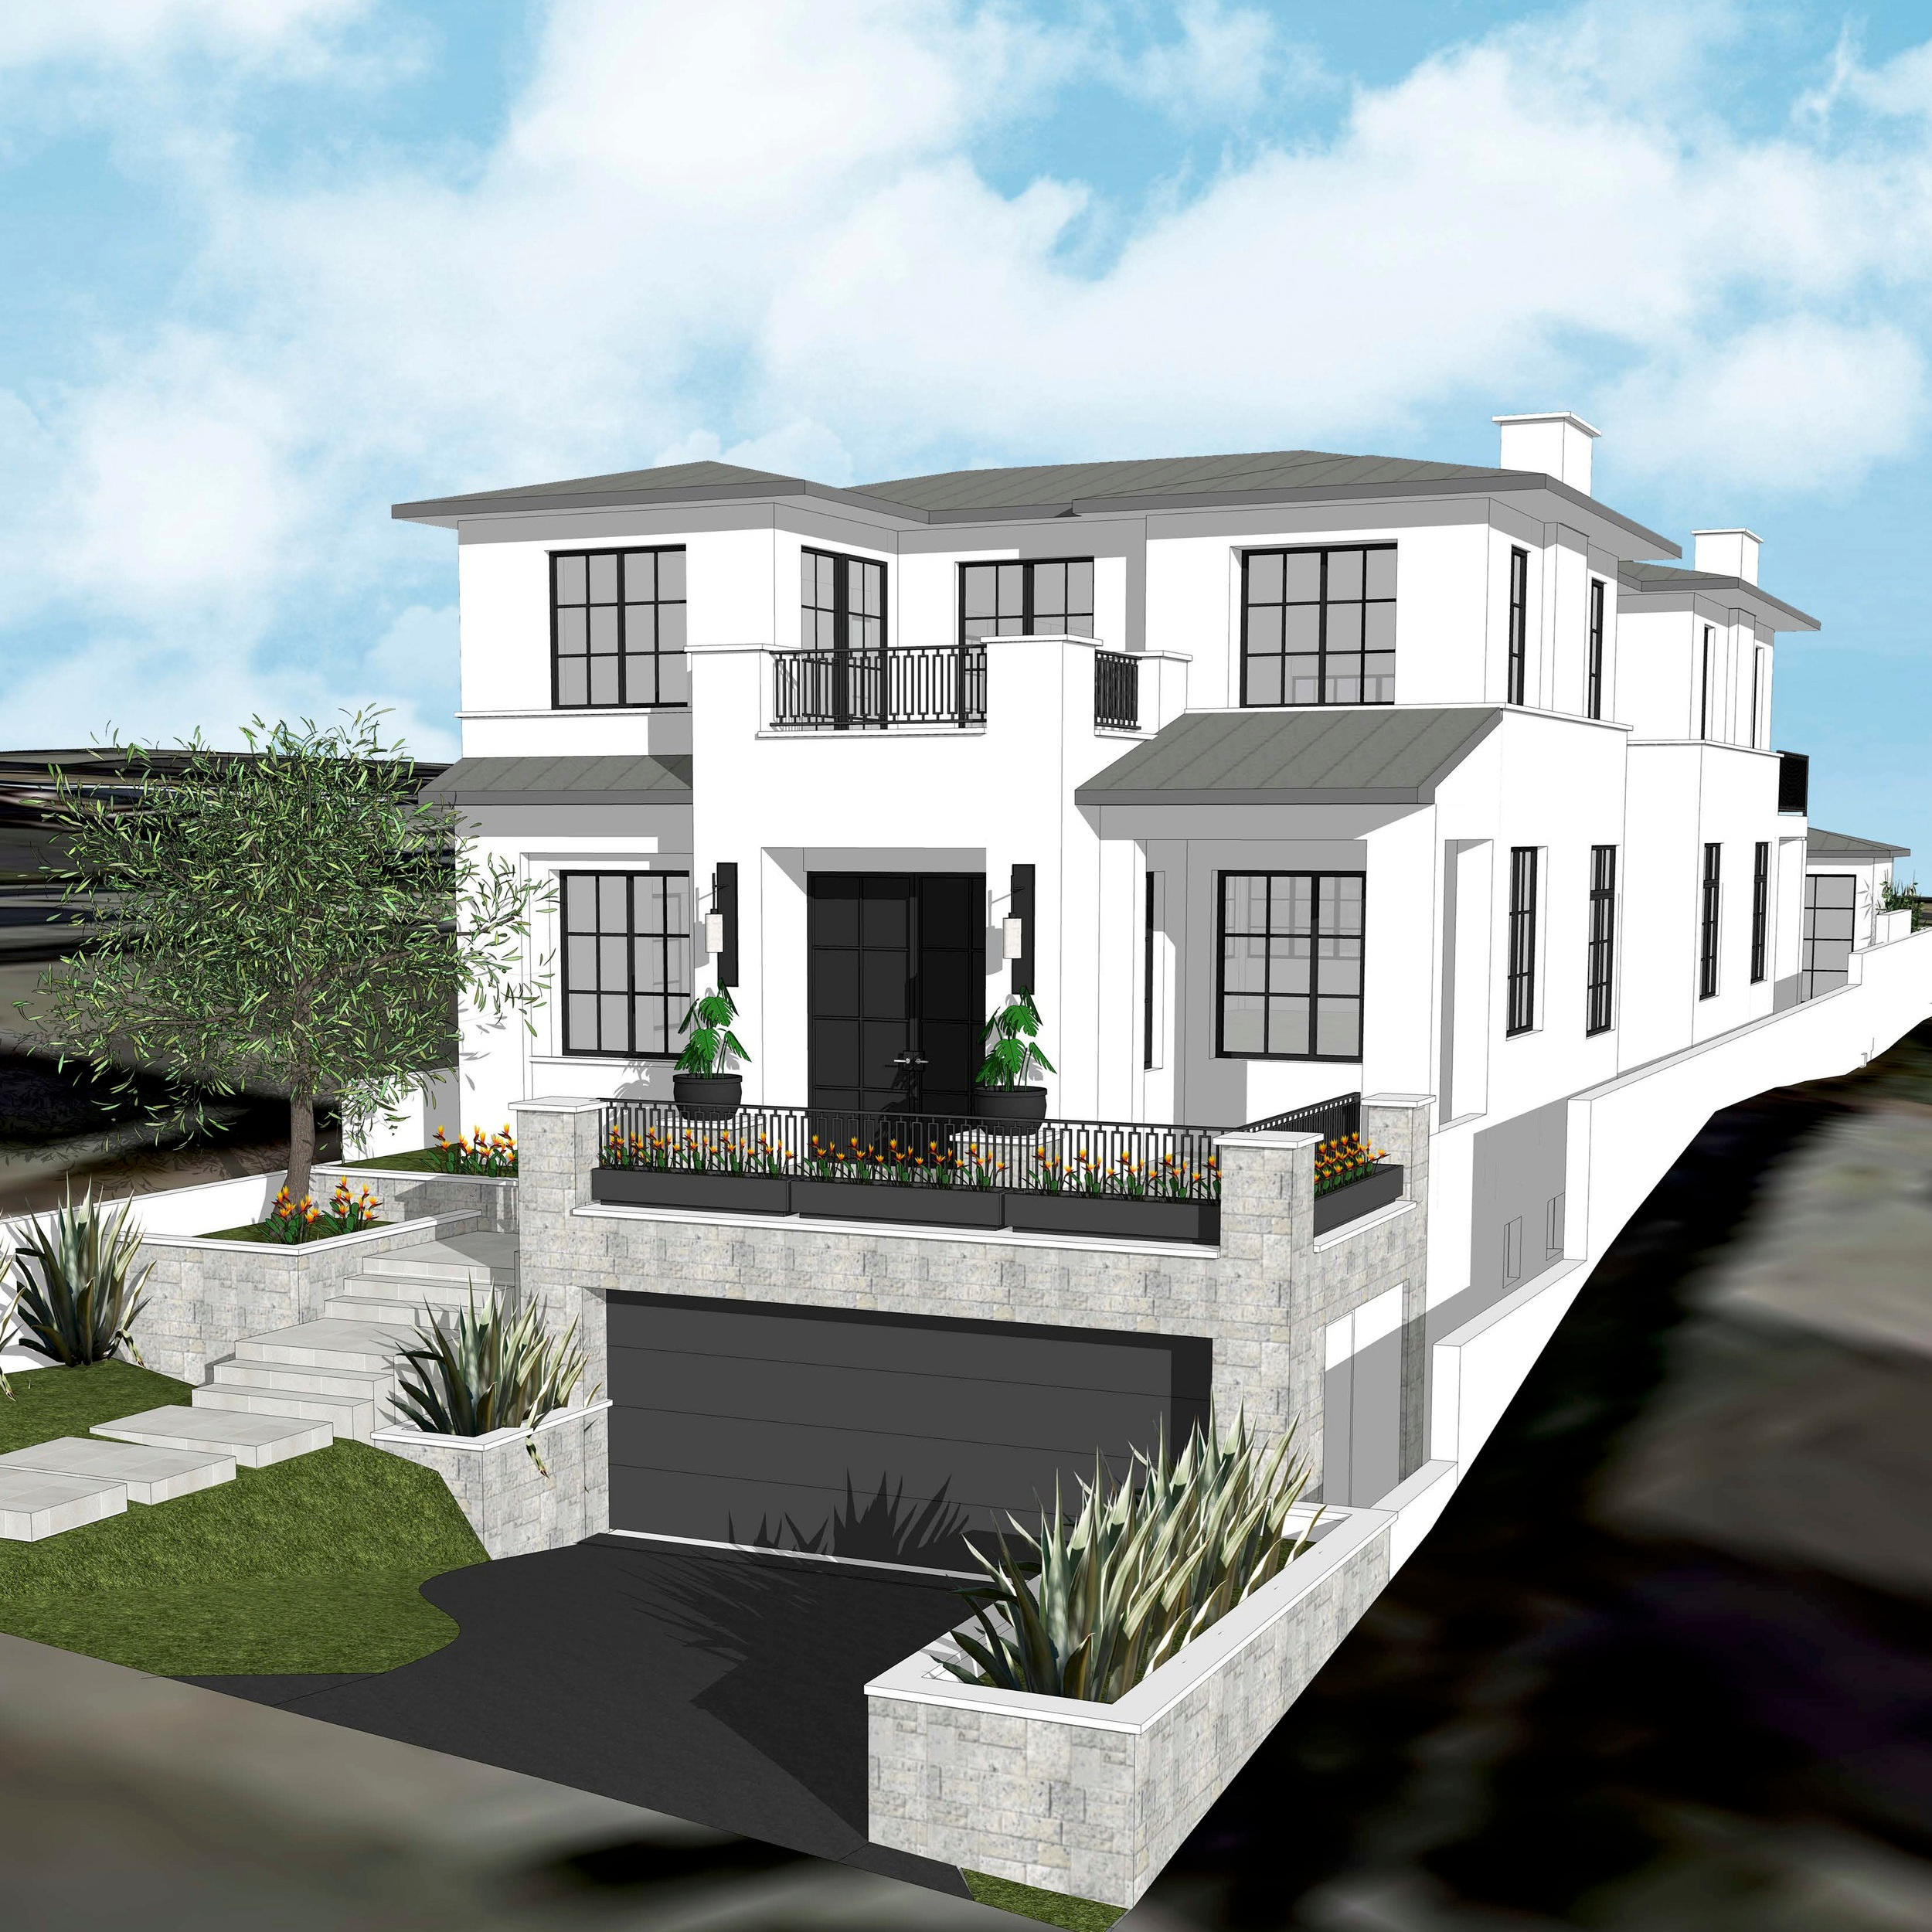 concept - Our aim is to help our clients navigate the design and build process of the project from its inception. Whether it's a remodel, or new build, we listen to your needs for the project during the planning stage to ensure all visions of your home are realized. Our firm works closely with each architect and client providing renderings of architectural details, interior elevations, and furniture floor plans prior to the permitting phase. This allows our clients to visualize their space and fall in love with the design. It also allows us to pin point anything that requires editing prior to the build phase, and anticipate challenges early so that construction is not delayed and additional costs do not arise.